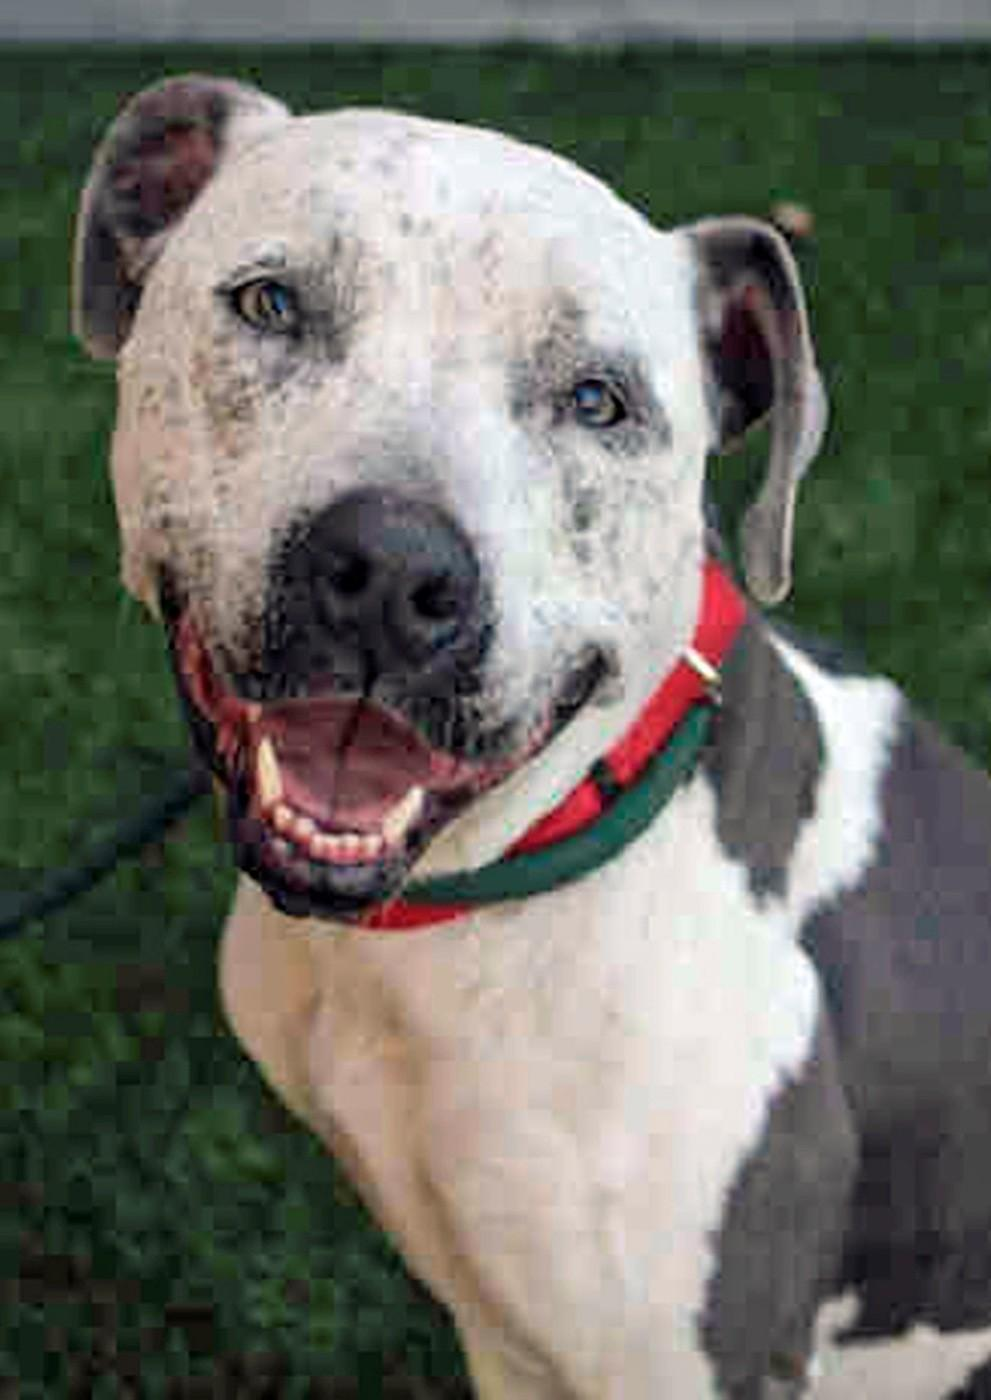 Blue is a three-year-old gray and white pit bull mix up for adoption.